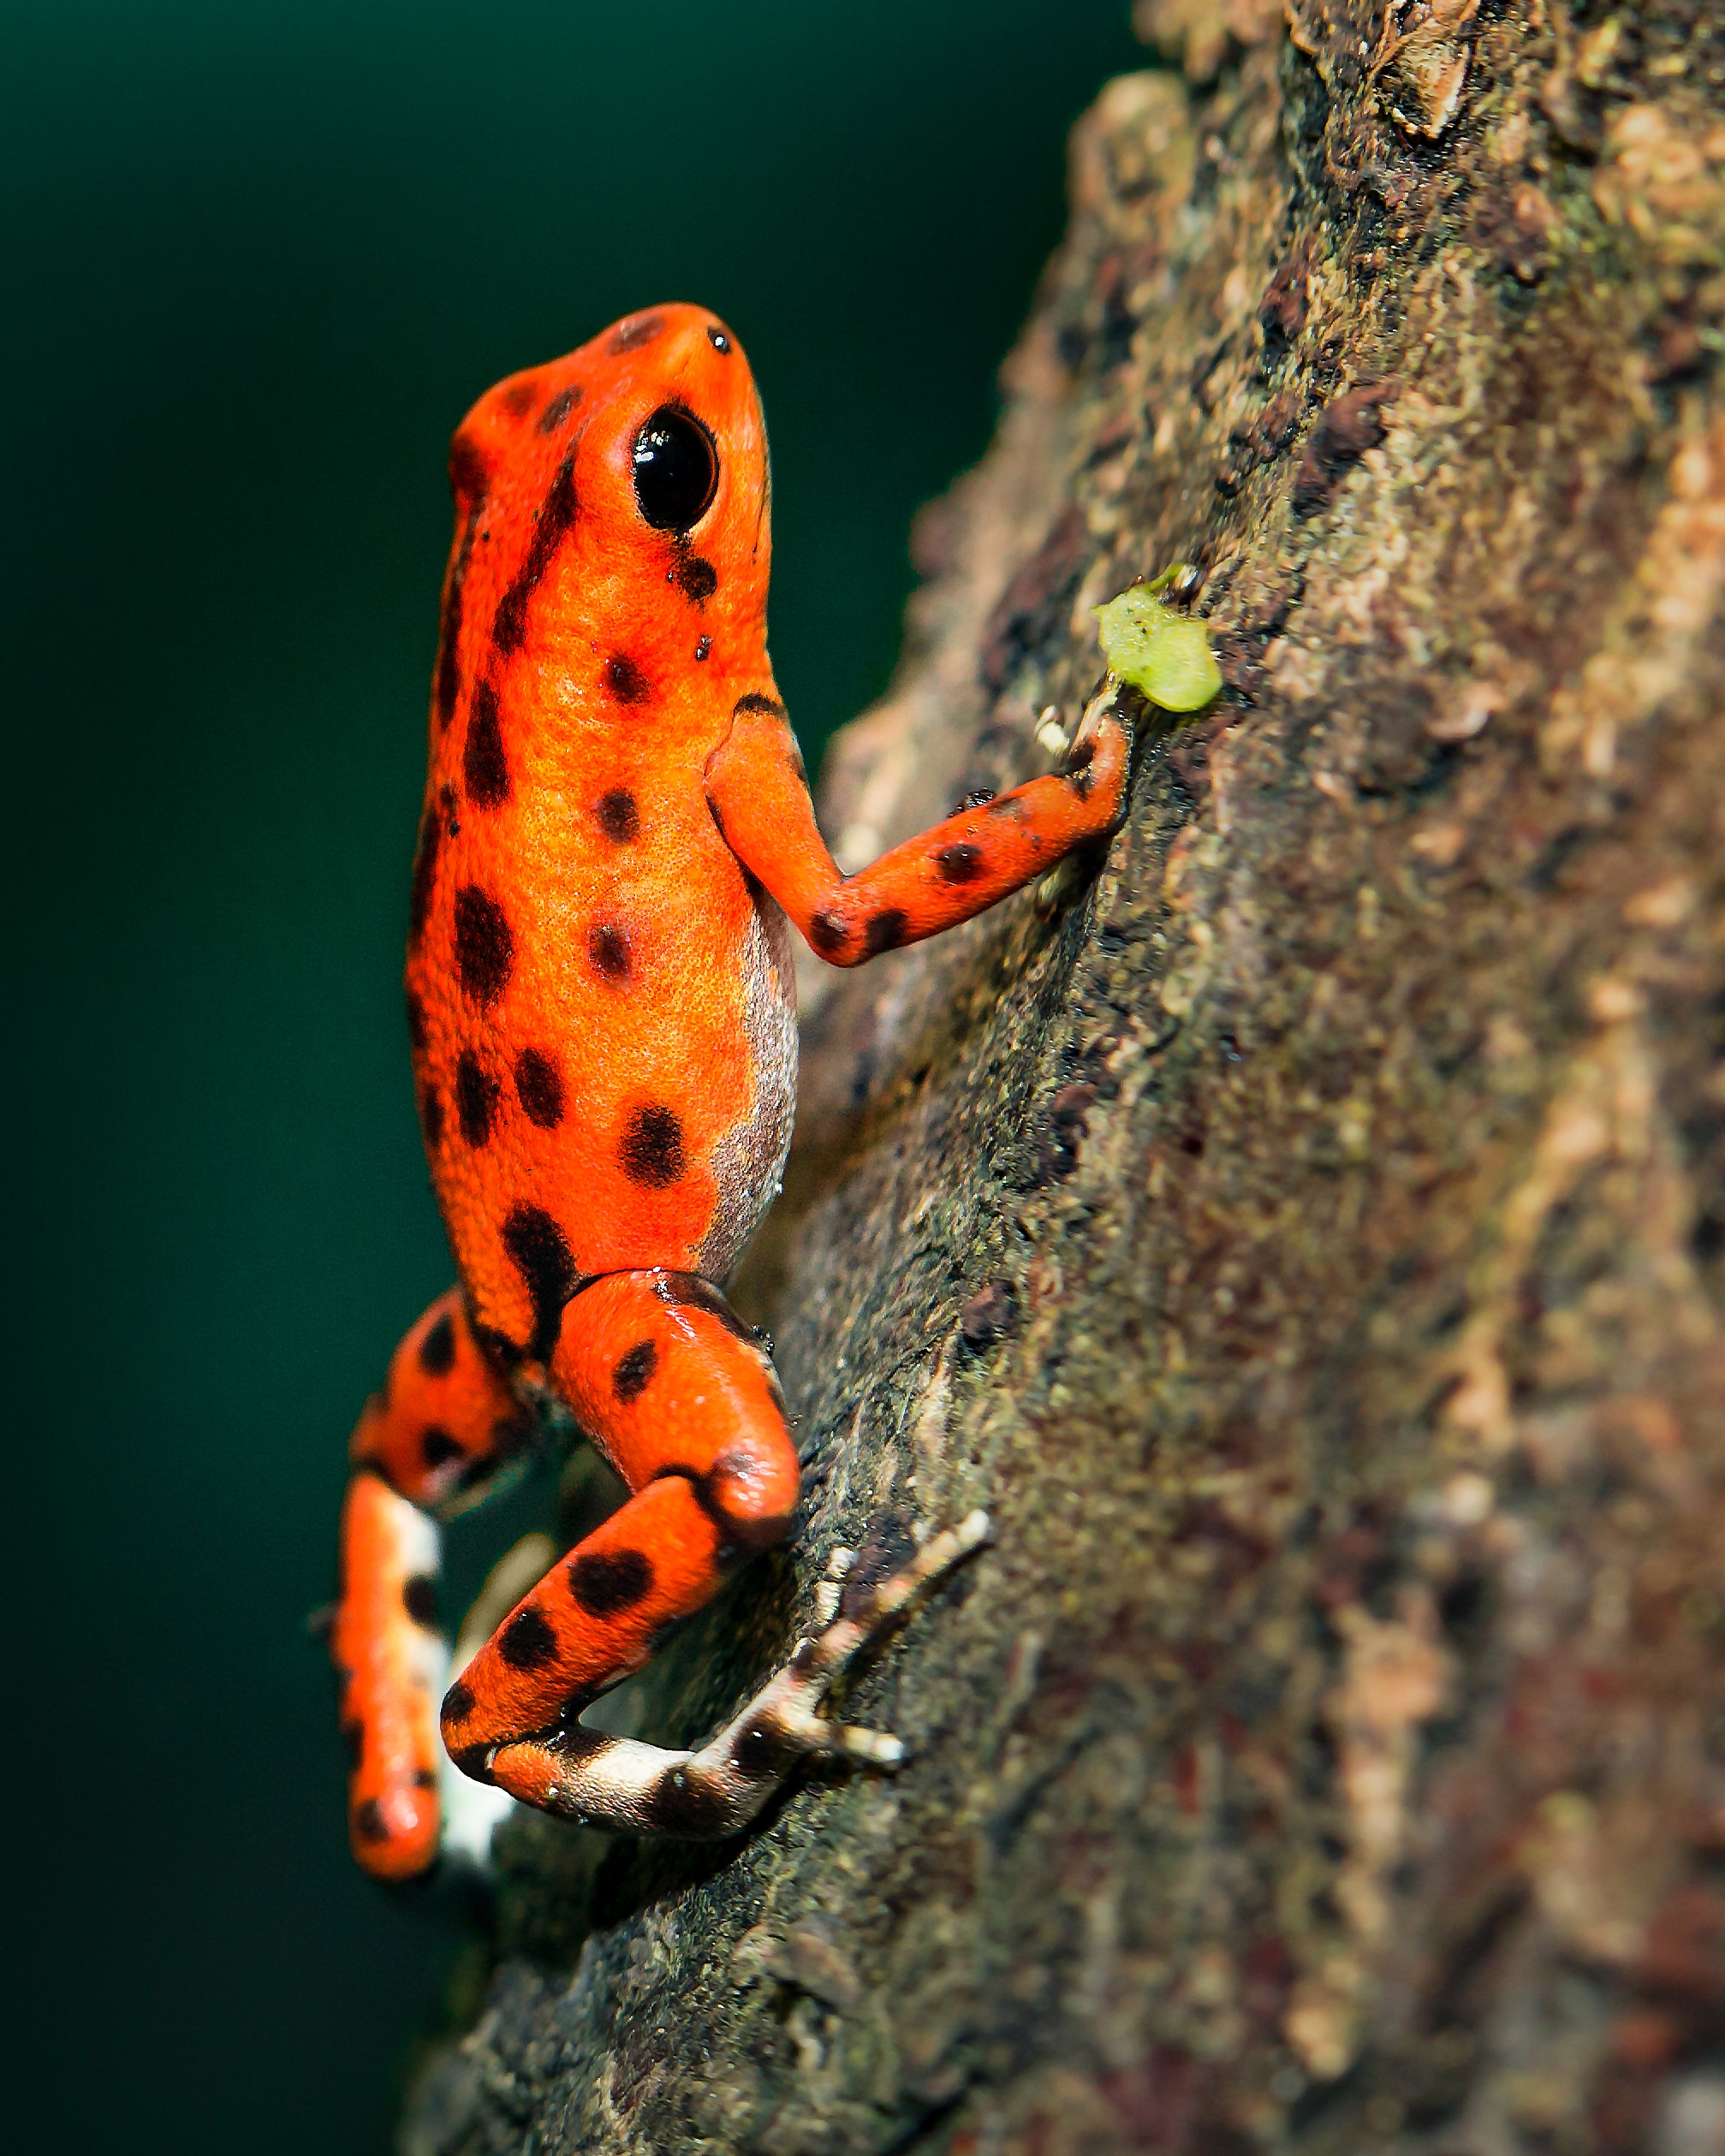 amphibian-animal-biology-638689.jpg